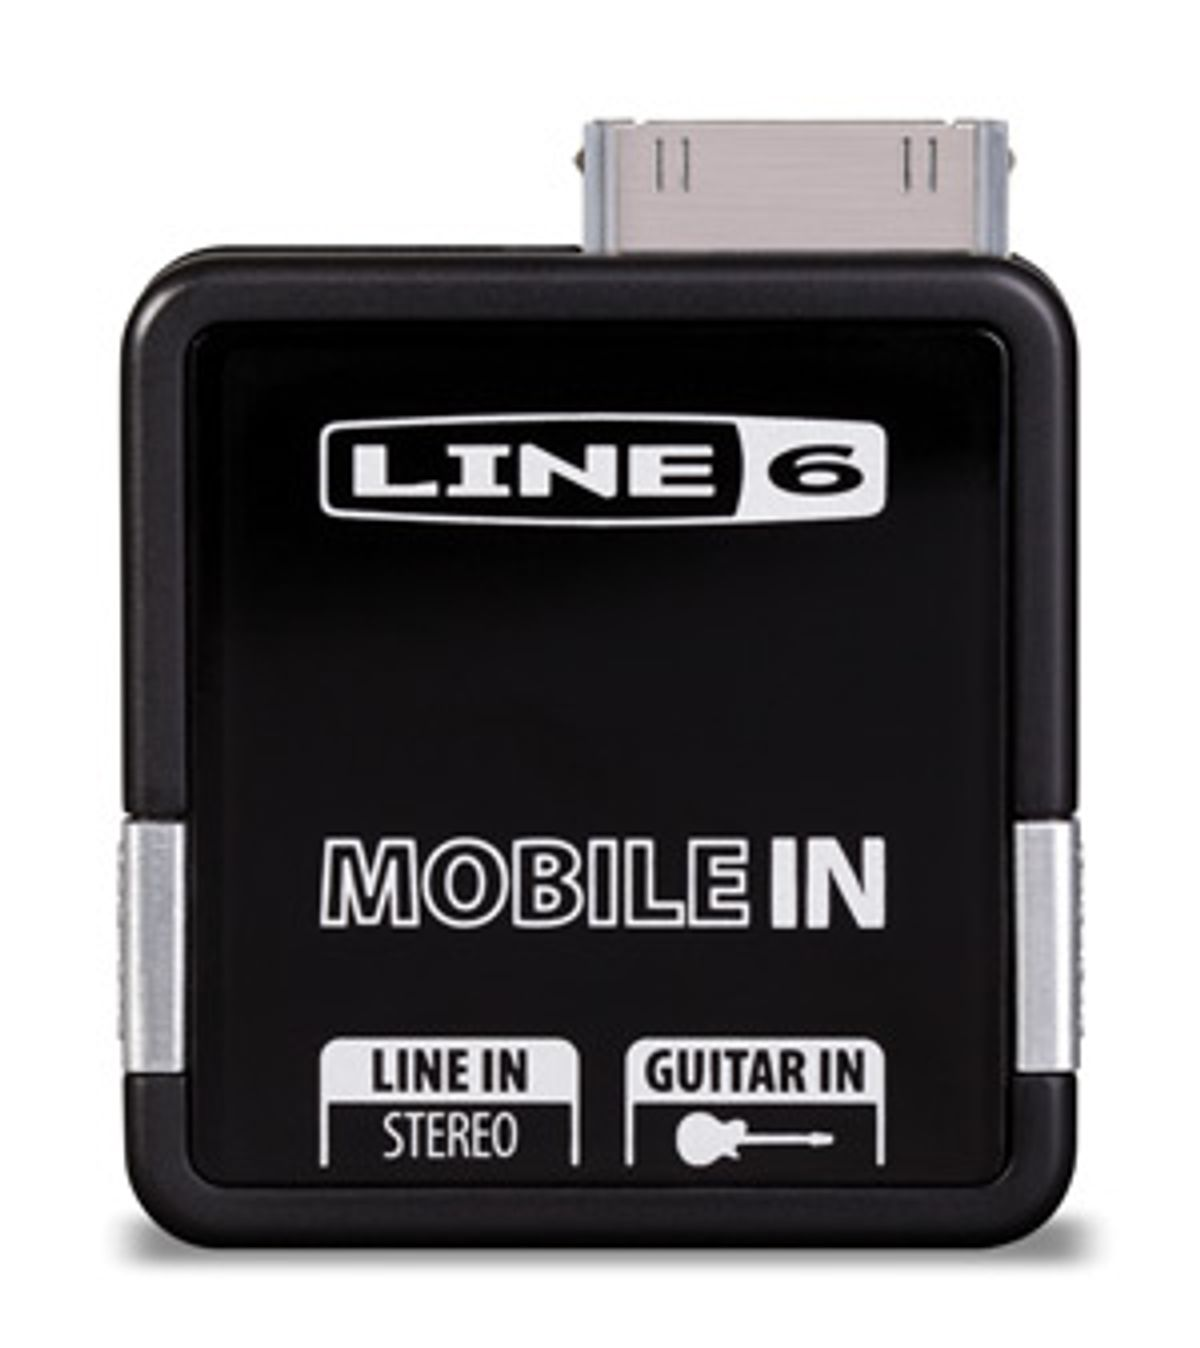 Line 6 Announces Mobile In Digital Input Adaptor and Mobile POD App